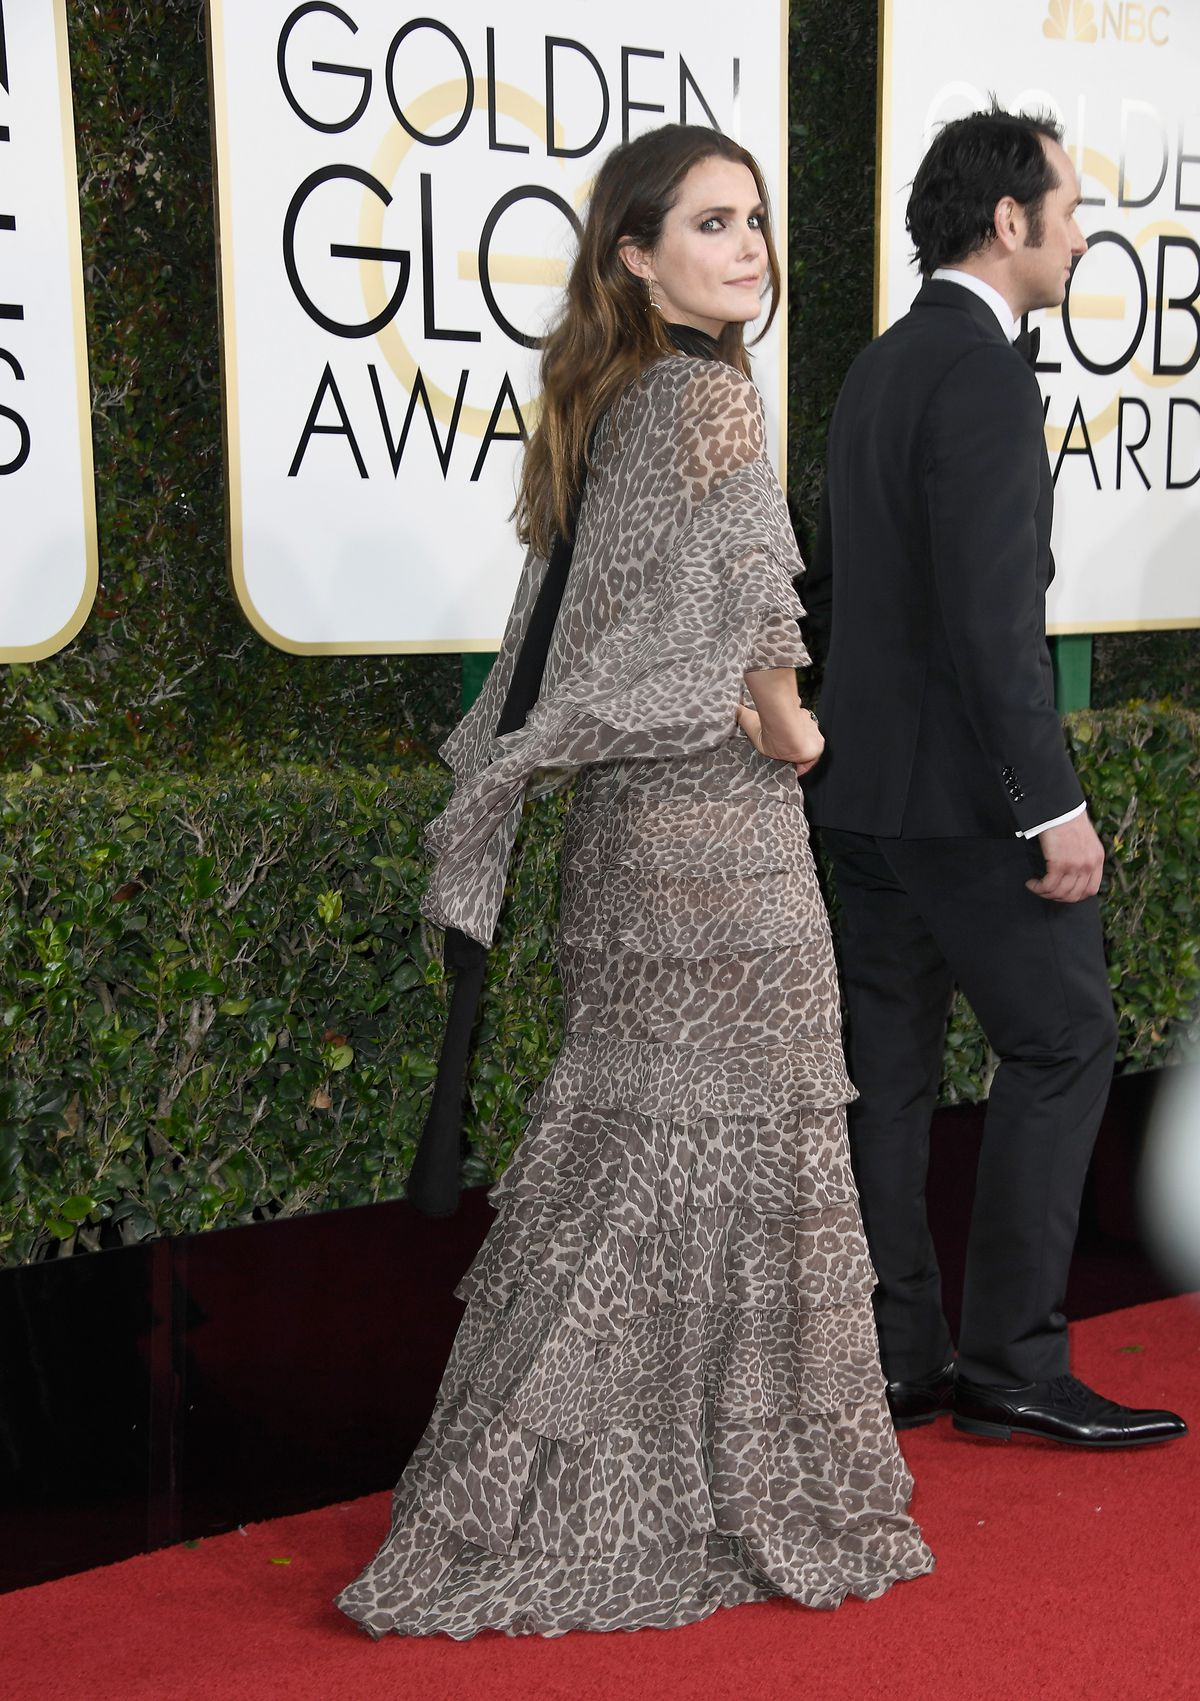 Keri Russell on the Golden Globes red carpet